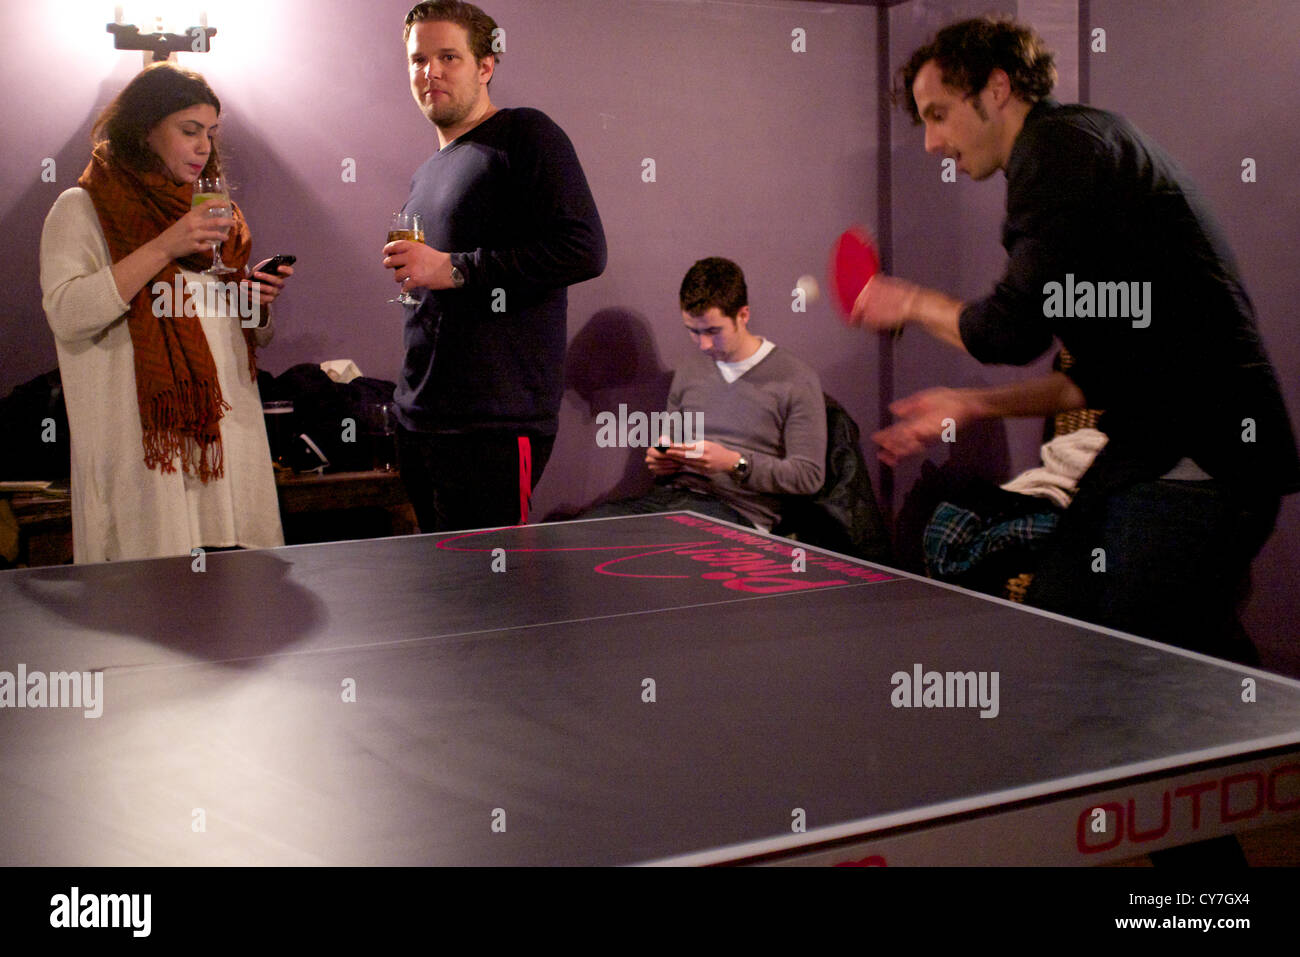 Table de ping-pong à Londres. Jouer au tennis de table dans un pub dans le quartier de Clerkenwell à Londres. Photo Stock